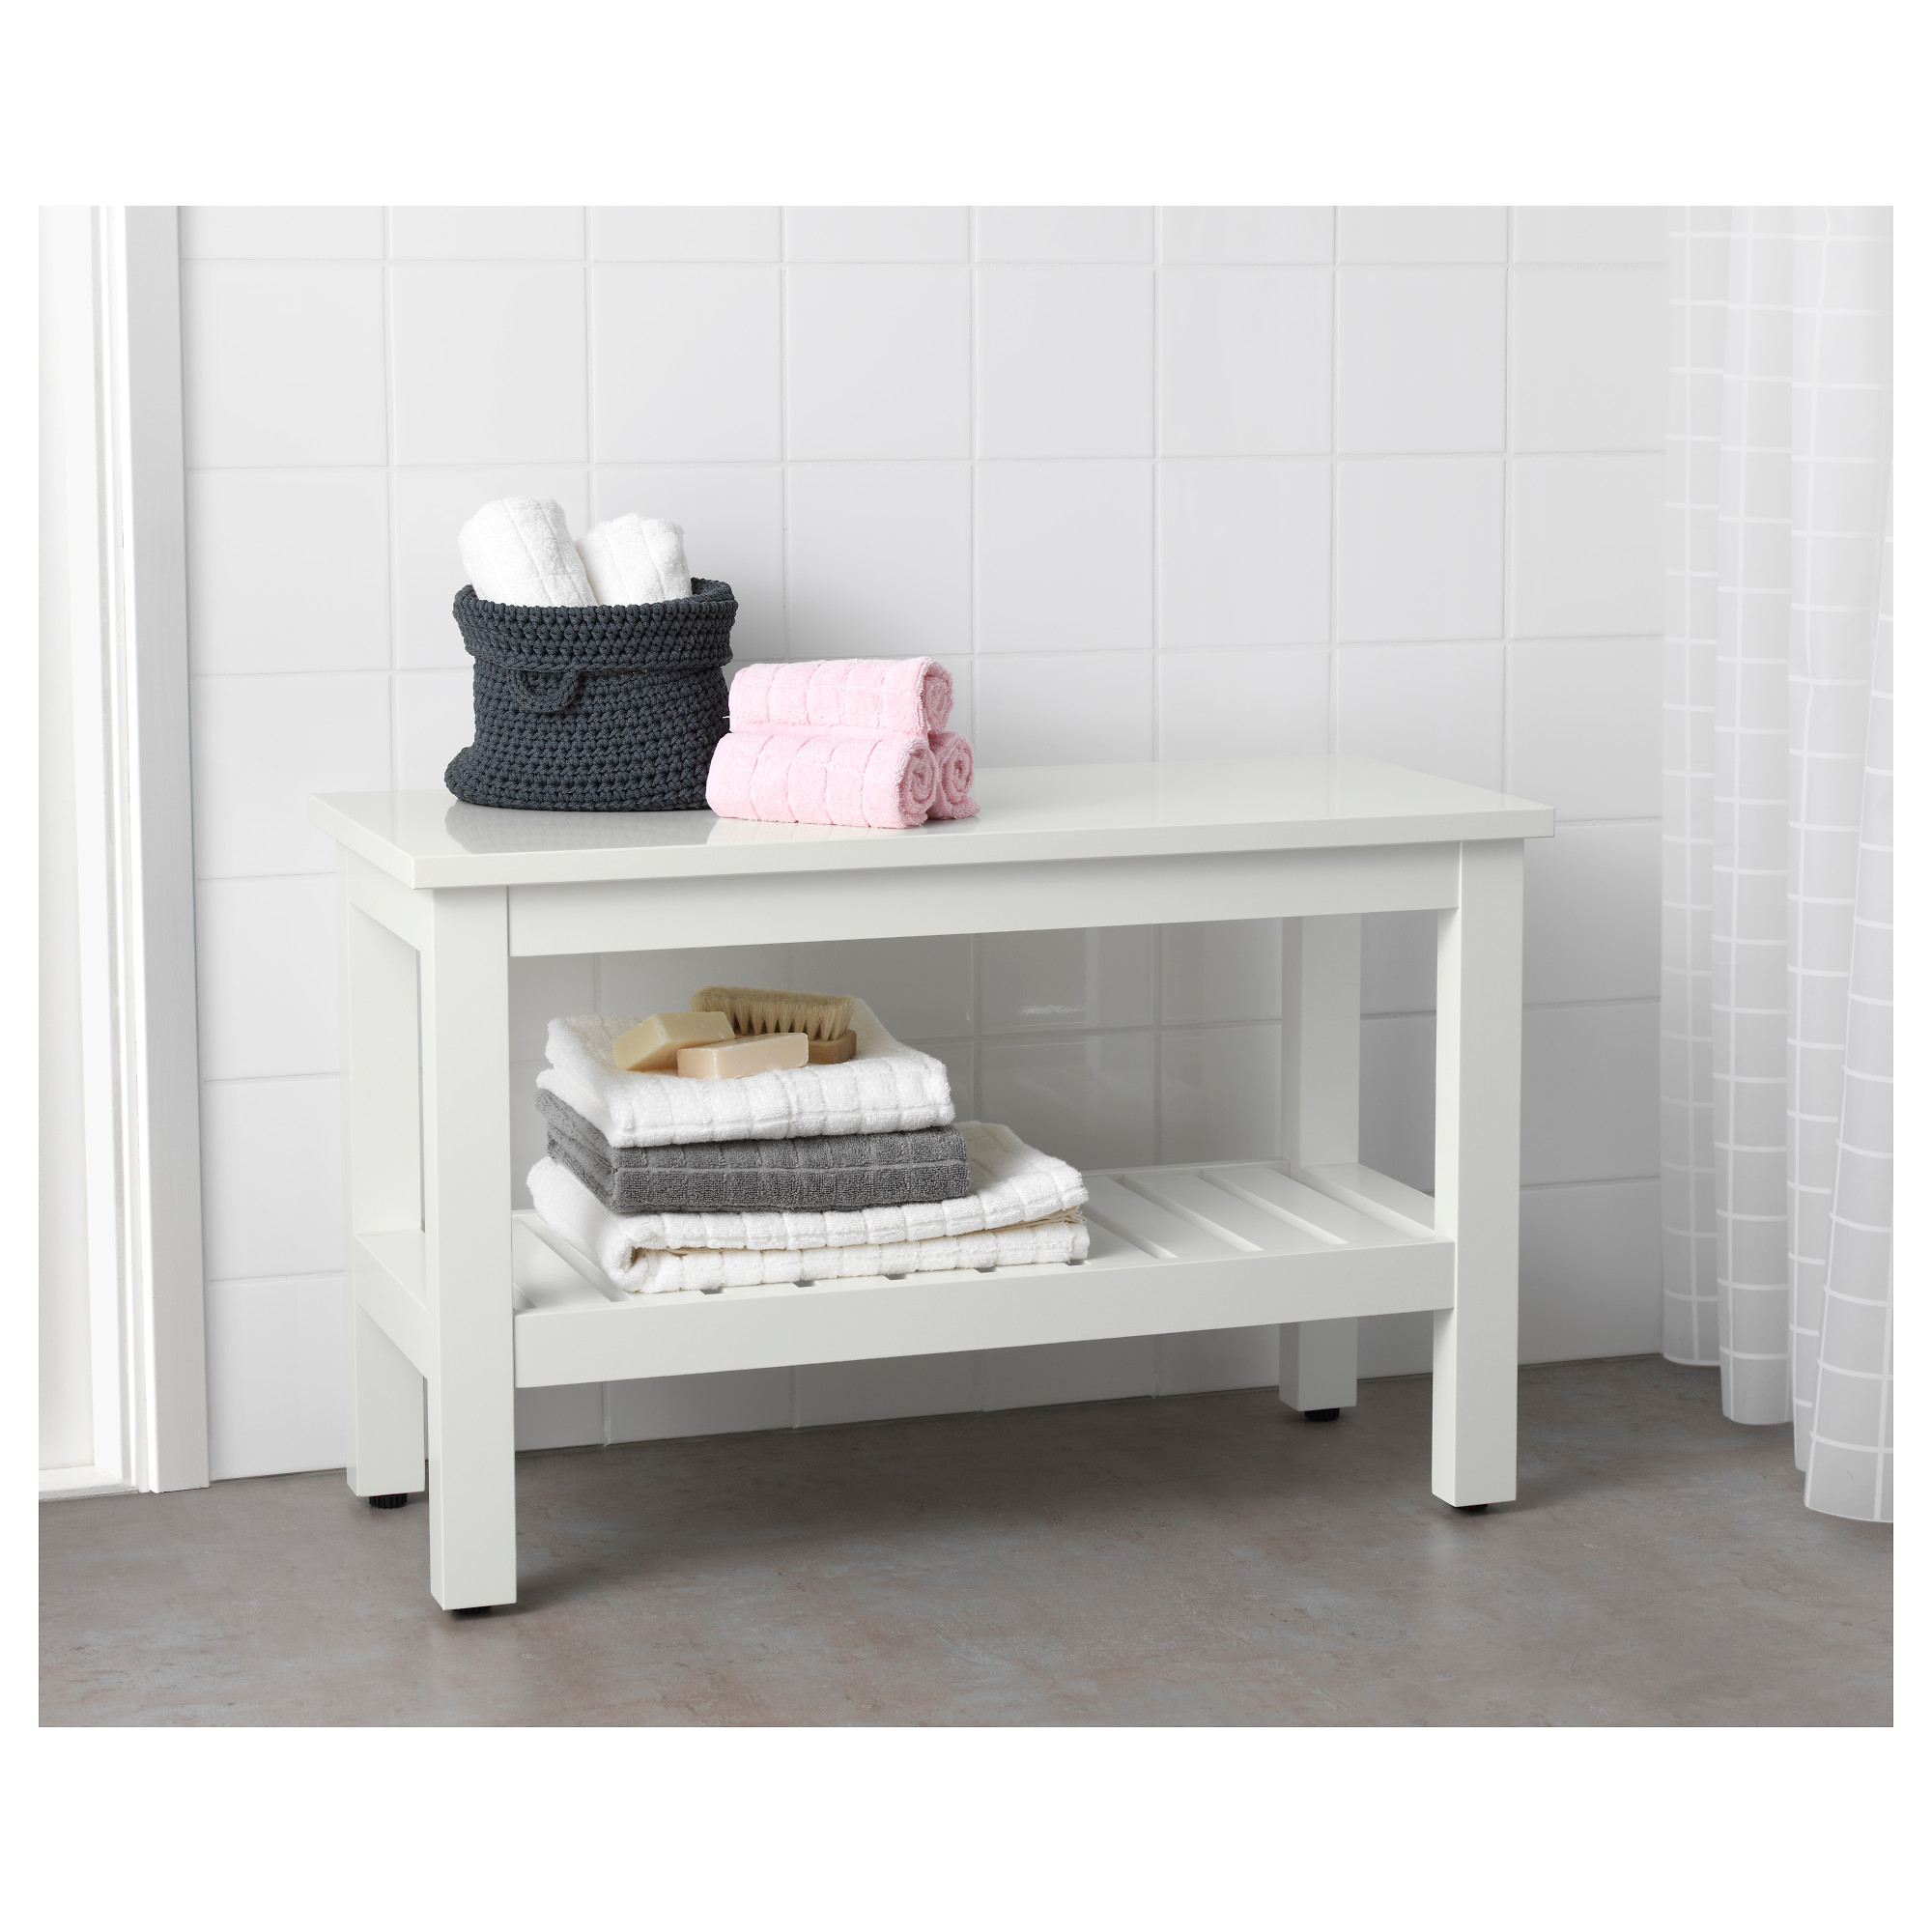 Hemnes bench   white   ikea